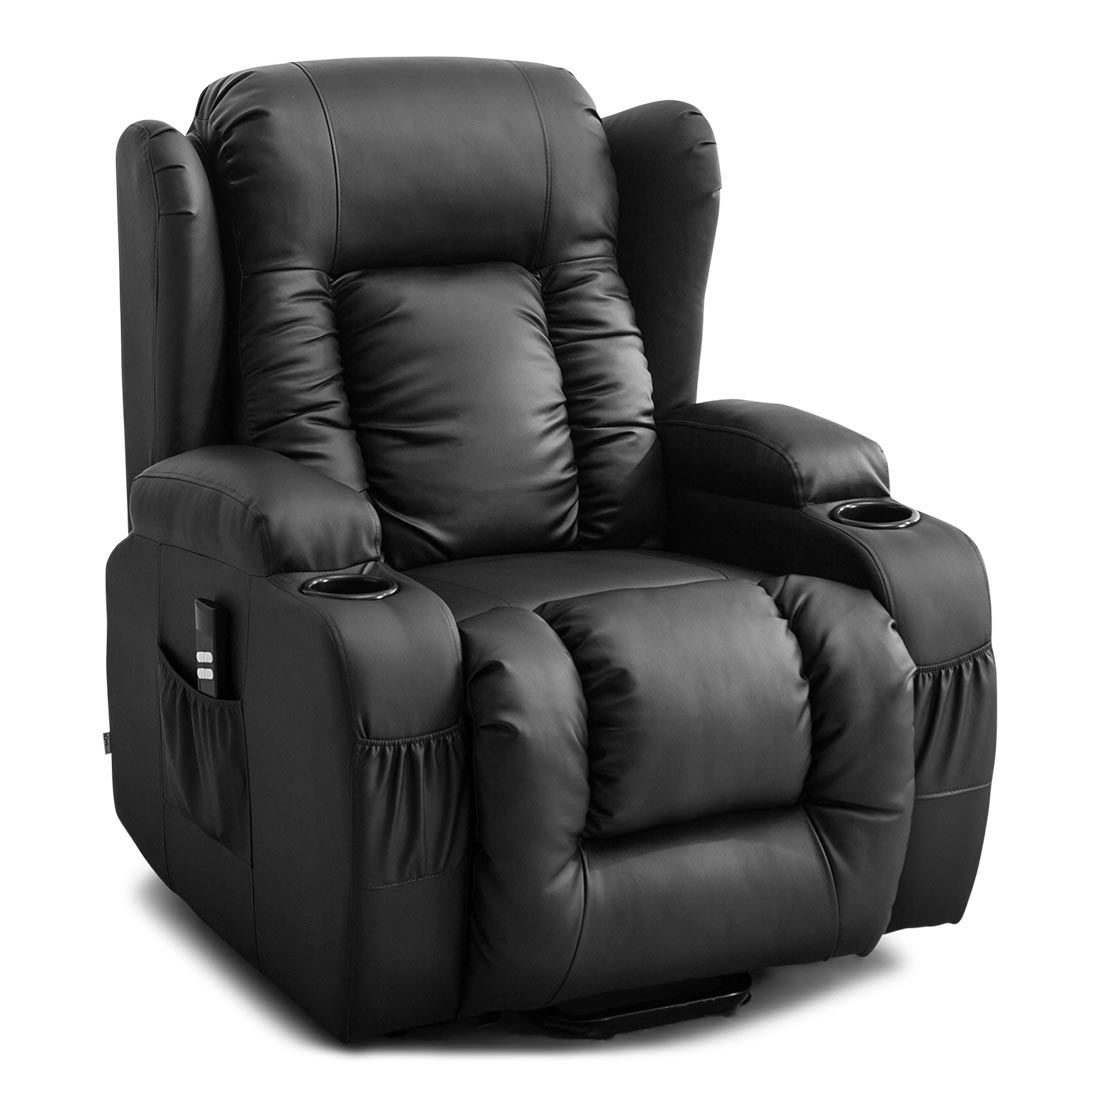 CAESAR-DUAL-MOTOR-RISER-RECLINER-LEATHER-MOBILITY-ARMCHAIR-MASSAGE-HEATED-CHAIR